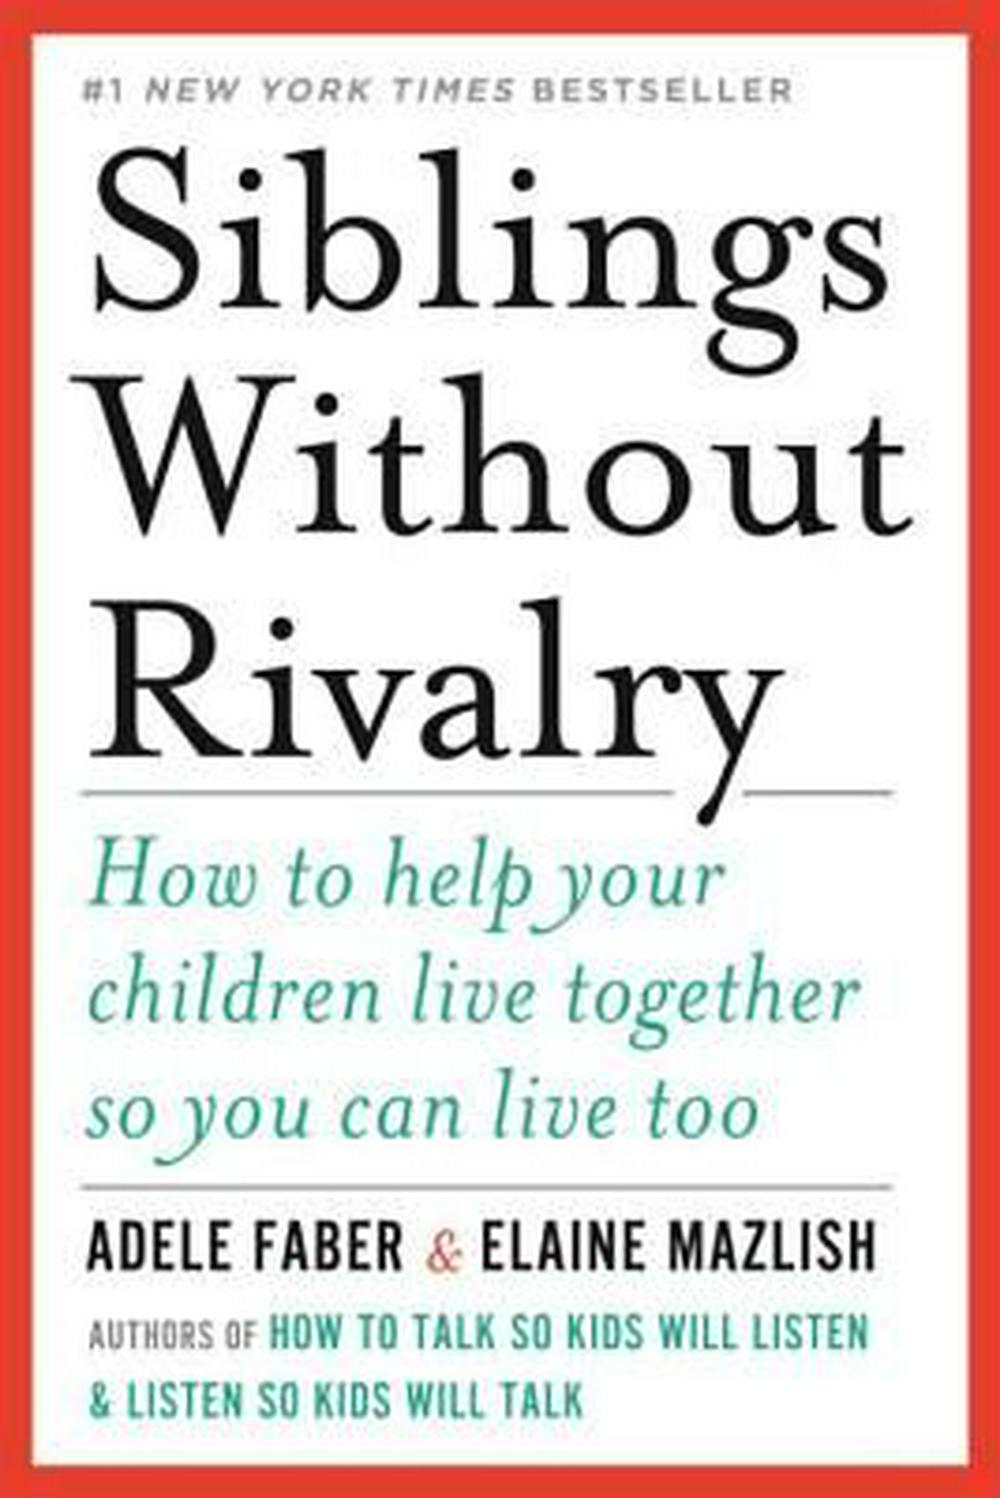 Siblings Without Rivalry by Adele Faber, Elaine Mazlish, ISBN: 9780393342215